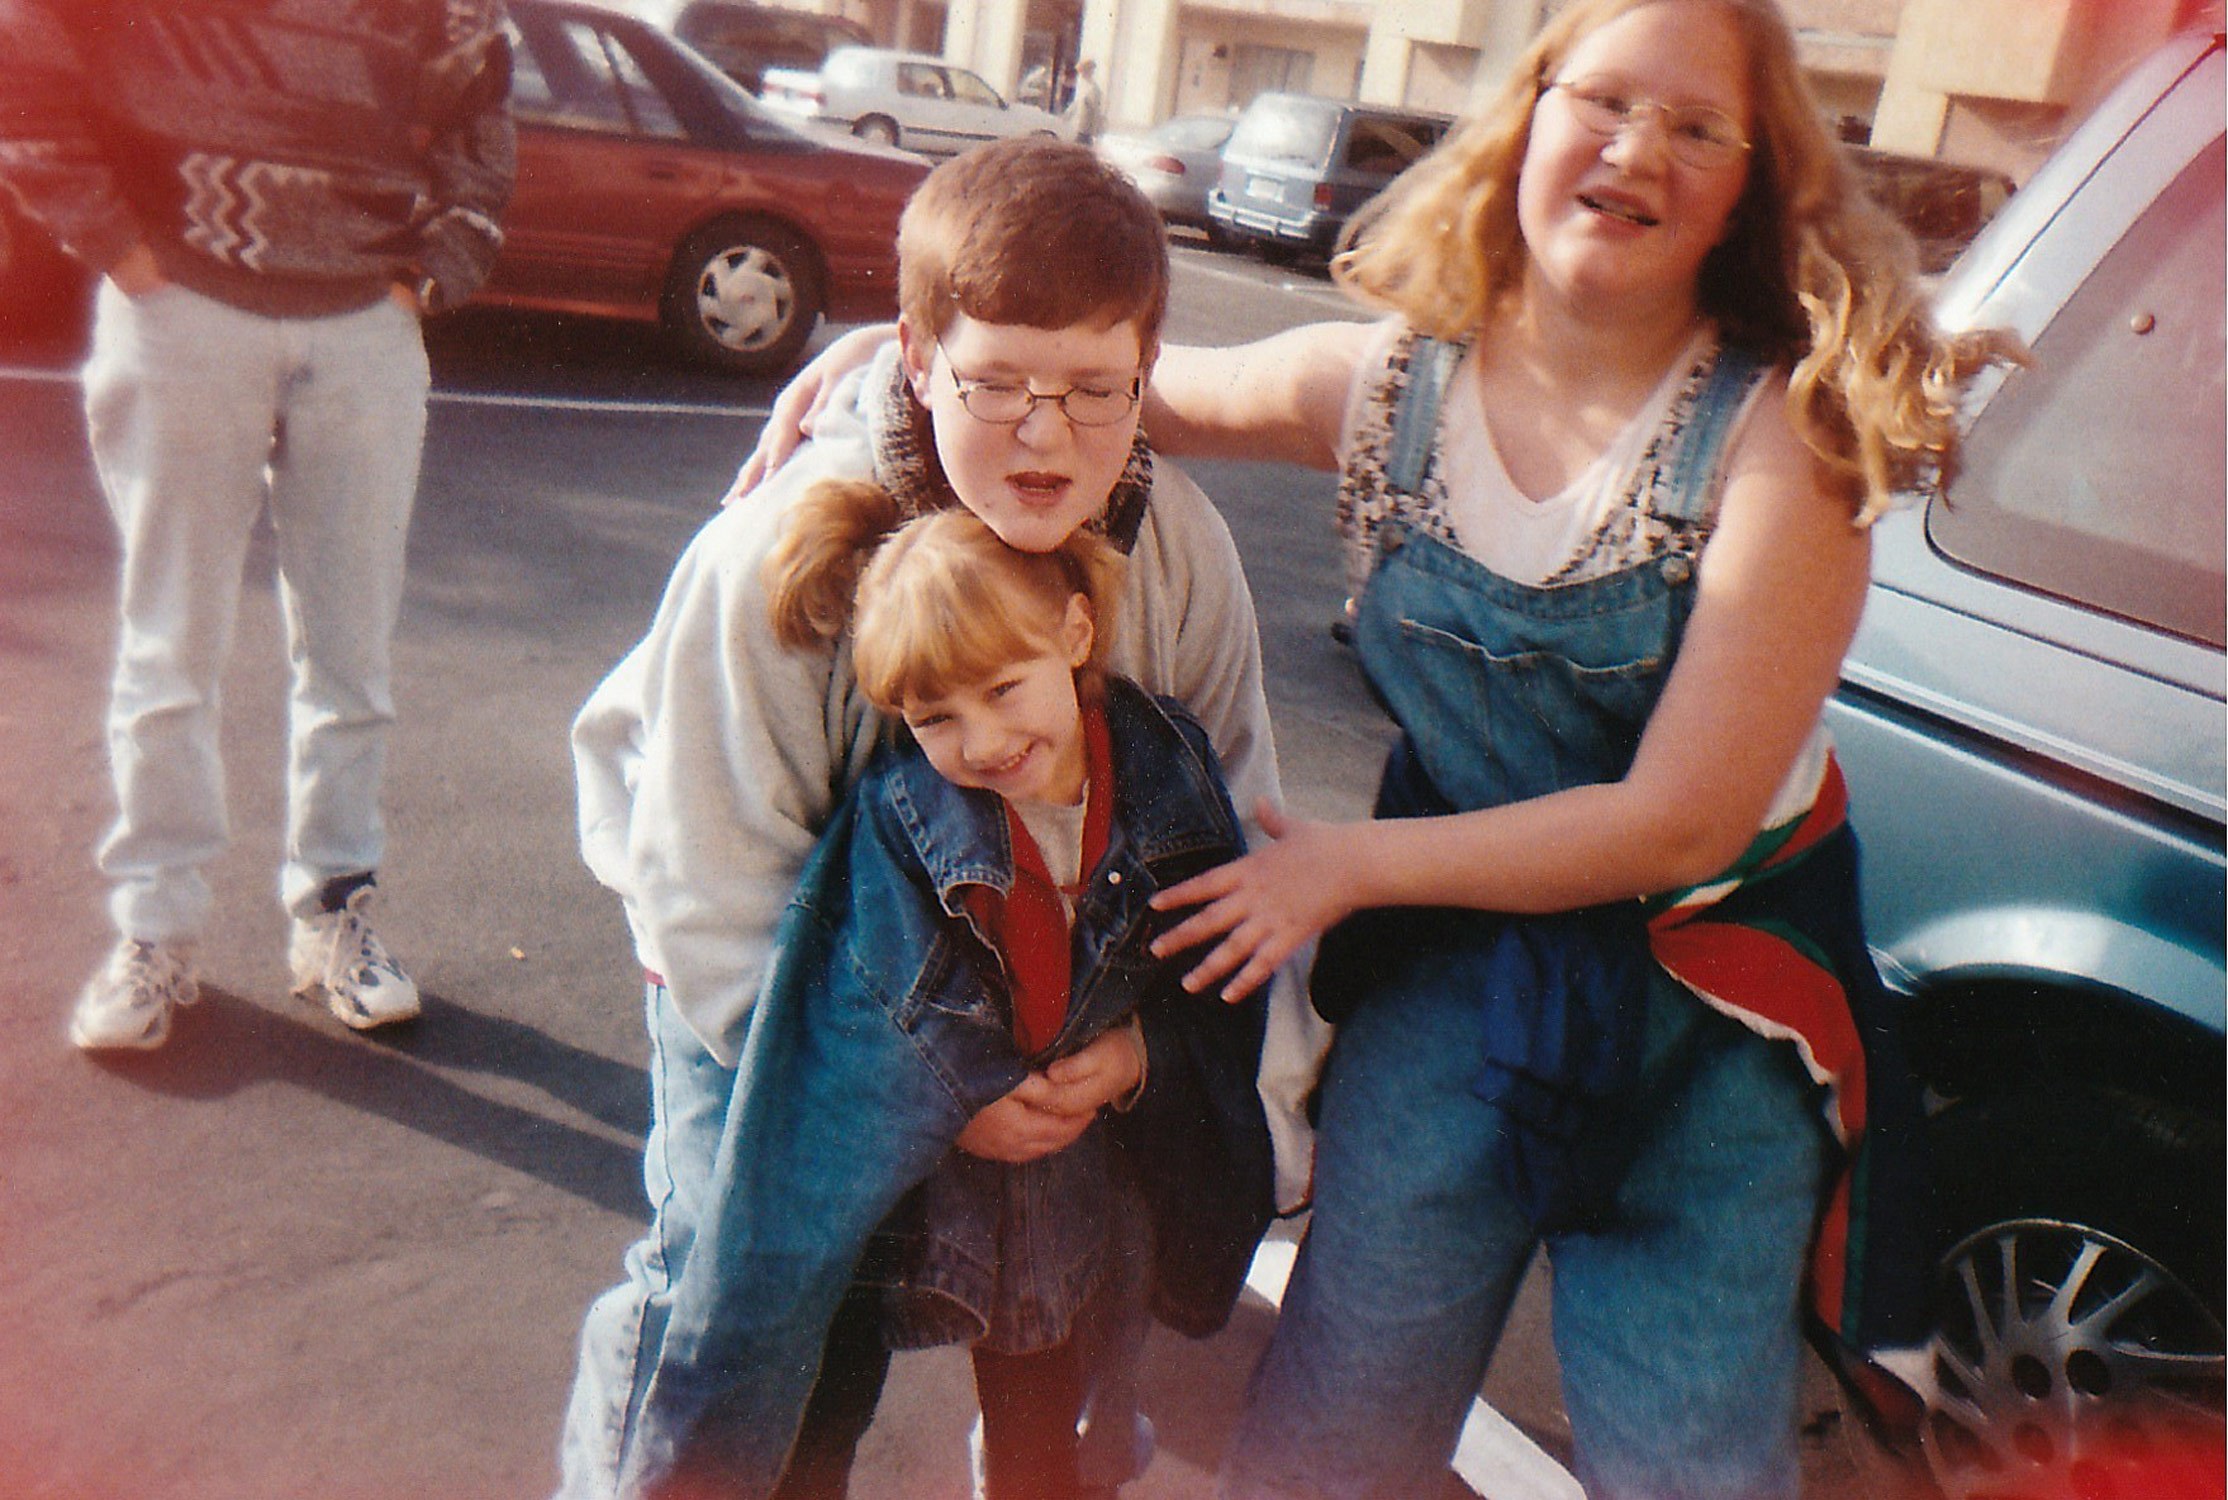 Bethany at Disneyland with her brother Jared and her sister Shelby. 2000.